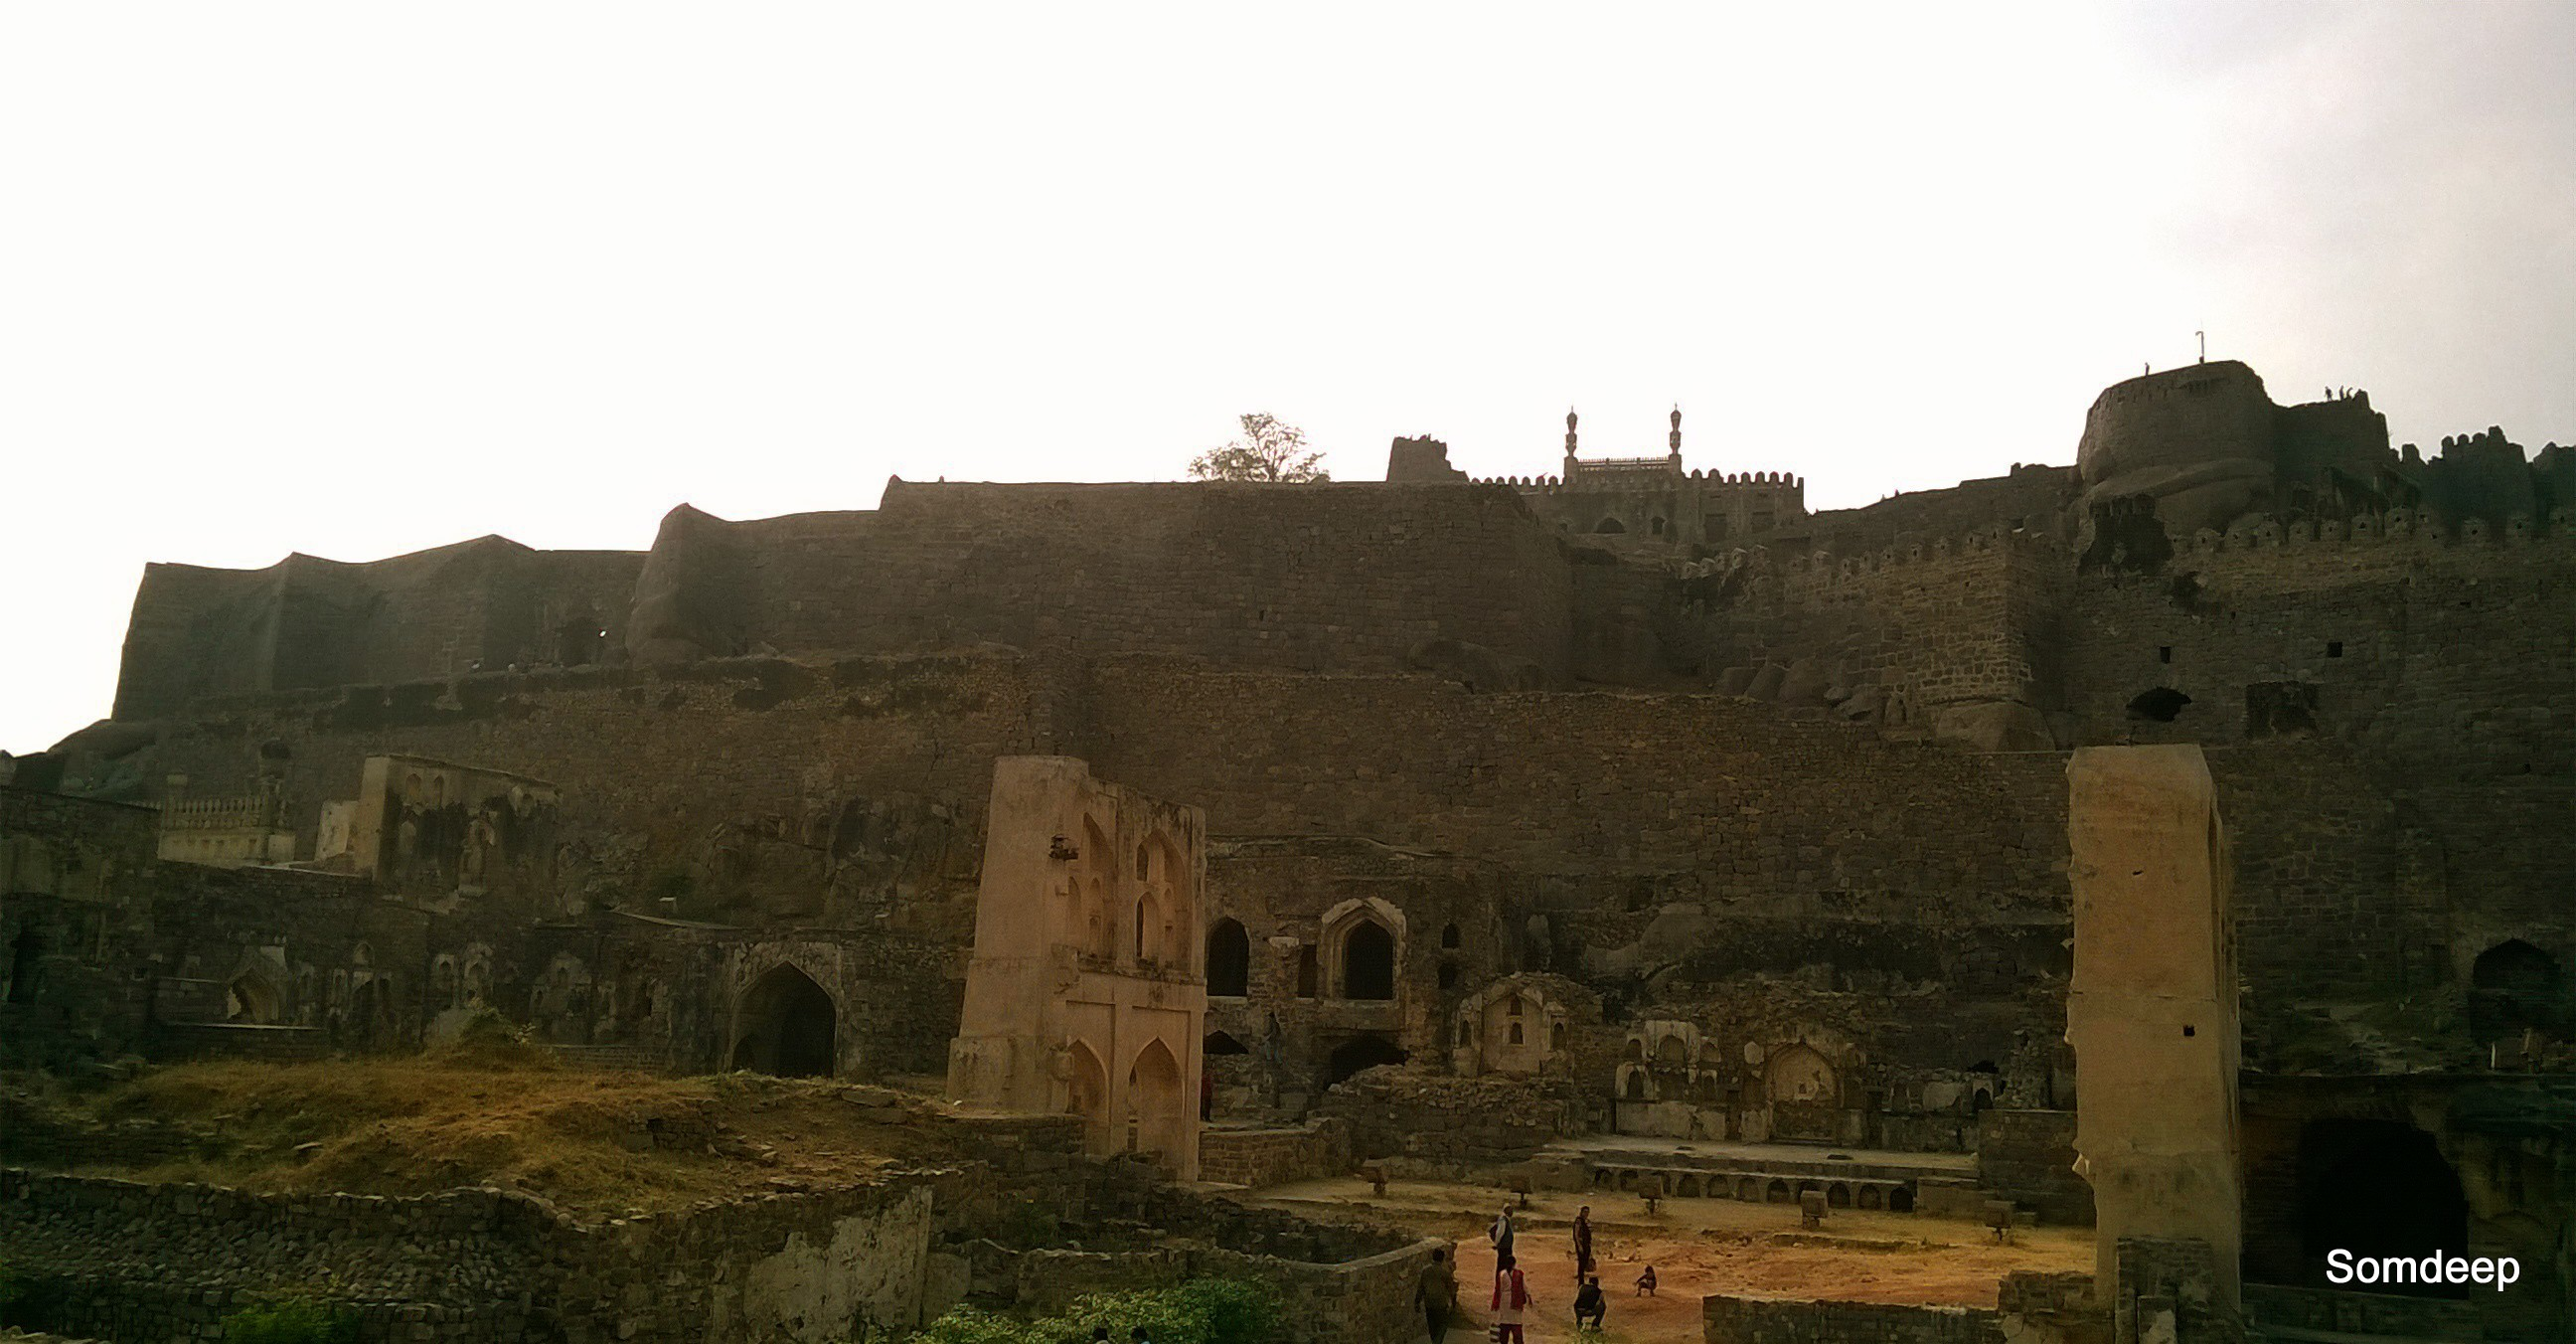 The facade of the Golconda fort